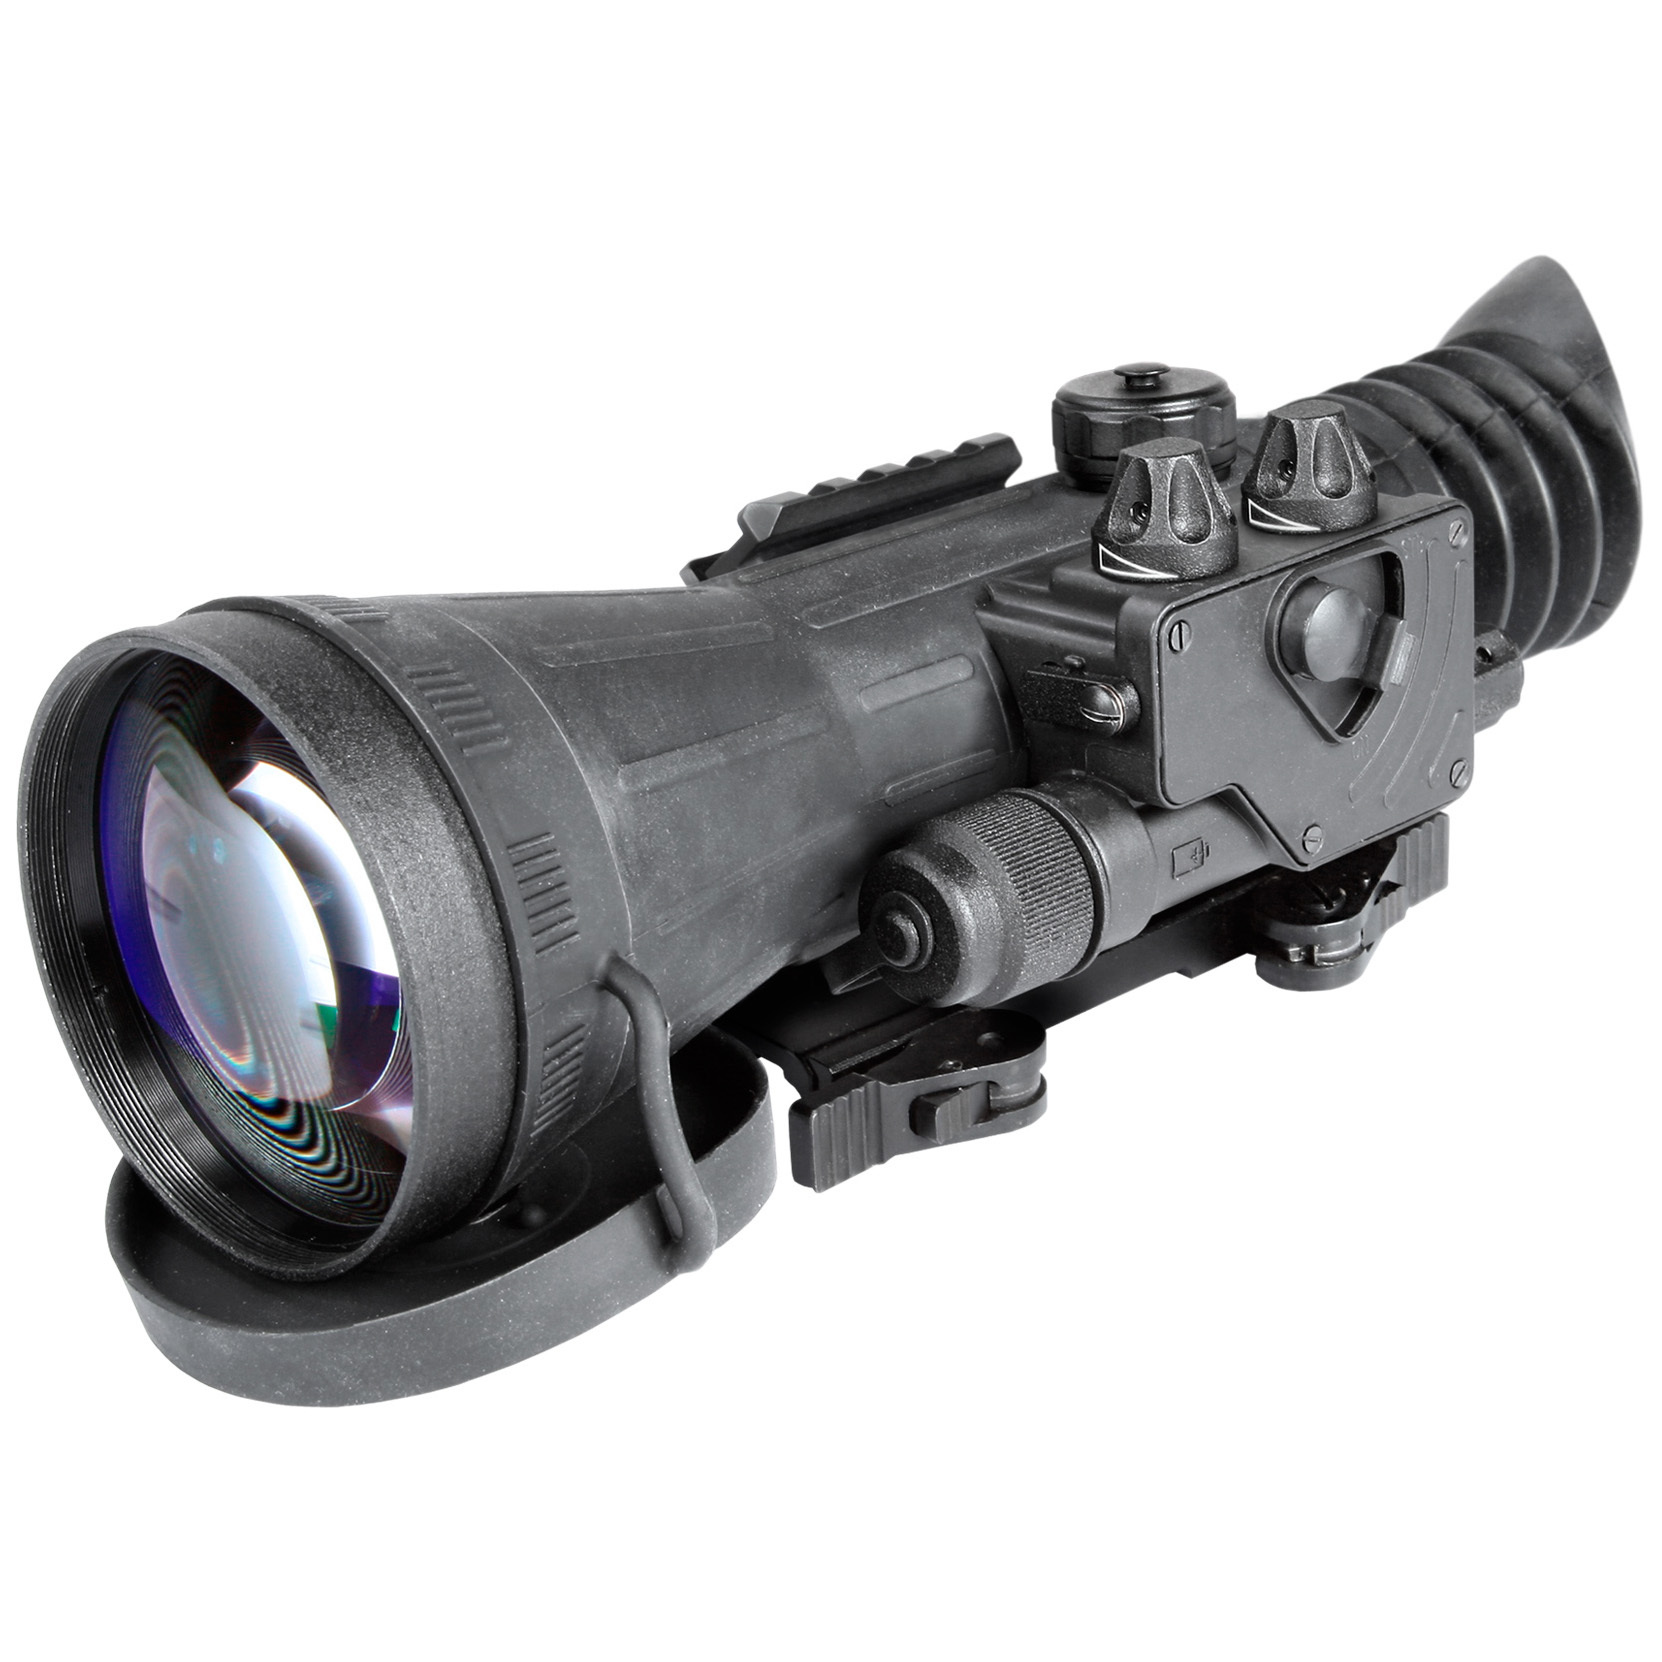 "Armasight Vulcan 4.5X Gen 2+ ID Night Vision Rifle Scope. Small in size but huge in performance, this Vulcan 4.5X Gen 2+ ID delivers stunning night imaging without unbalancing your rifle. It weighs just 33 ozs., but still packs a high-resolution image tube, multi-coated all-glass lenses and an internally adjustable fine reticle that makes precise shot placement incredibly easy.Mount it to your rifle's Weaver or Picatinny rail in seconds. No tools. No time wasted. Then let the Vulcan do its thing, pulling your target out of the shadows with a Gen 2+ ID image tube and serving it up in stunning clarity. Ideal for predator hunters, tactical marksmen and security personnel. Features:Wide array of IIT configurations 4.5X magnification Shockproof, all-glass IR transmission multi-coated optics Bright light cut-off Illuminated reticle with brightness adjustment Variable gain control (optional) Wireless remote control Detachable long-range infrared illuminator Waterproof design Low battery indicator Quick-release mount Mounts to standard Weaver rails Runs on 1 CR123A battery (included) or 1 AA battery (not included) Includes lens cap, carrying case, battery adapter, and lens tissue Measures 3.9 x 3.2 x 8.6""l Weighs 2.1 lbs. Specifications:IIT generation: Gen 2+ ID Resolution: 47-54 lp / mm Exit pupil diameter: 7mm Eye relief: 45mm Windage and elevation adjustment: 1/2"" MOA Lens system: F1.54, F108 mm 9 degrees F.O.V. Diopter adjustment: -4 to +4 Controls: direct Battery life: 50 hours (CR123A) or 46 hours (AA) Operating temperature: -40 degrees to 122 degrees F. Storage temperature: -50 degrees to 158 degrees F. - $2,614.99"